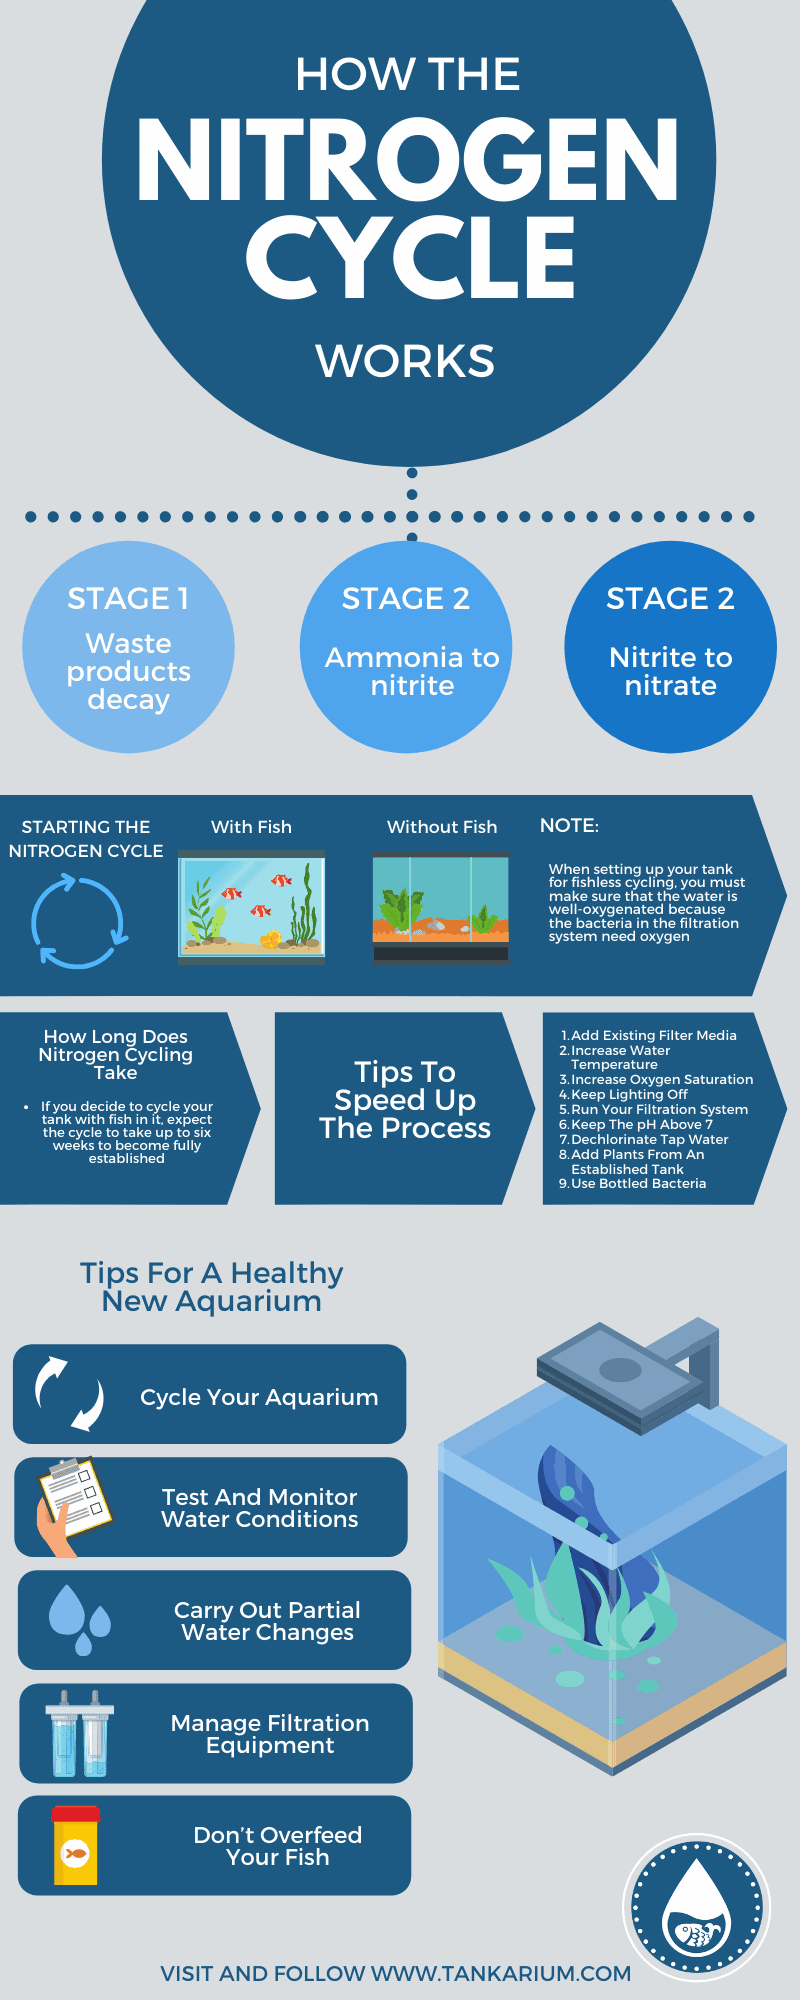 How The Nitrogen Cycle Works - Infographic